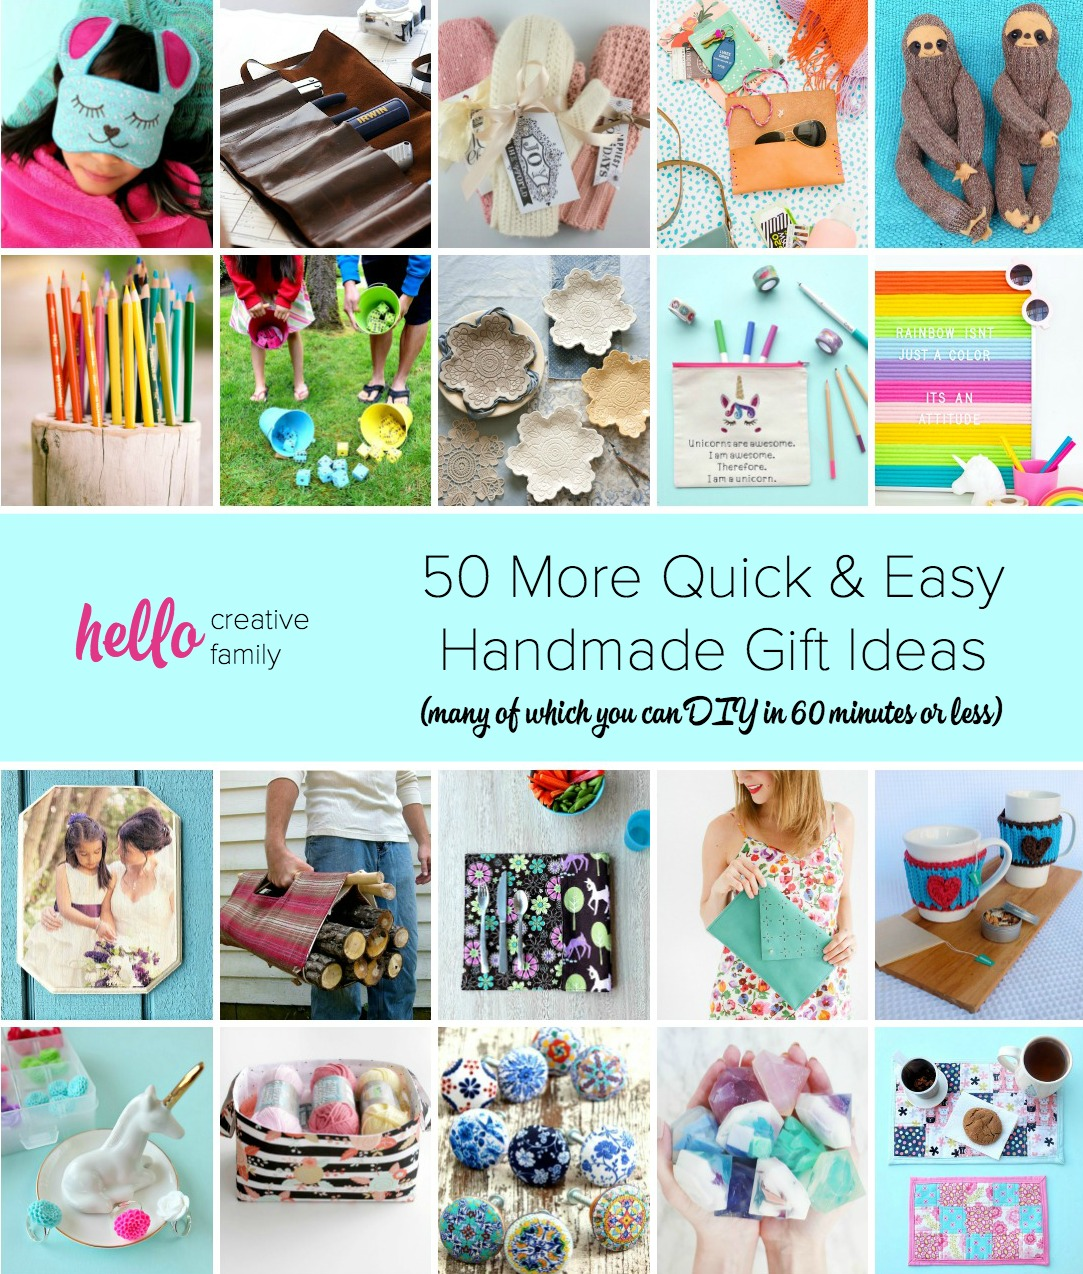 50 More Quick & Easy Handmade Gift Ideas (many of which you can DIY in 60 minutes or less)